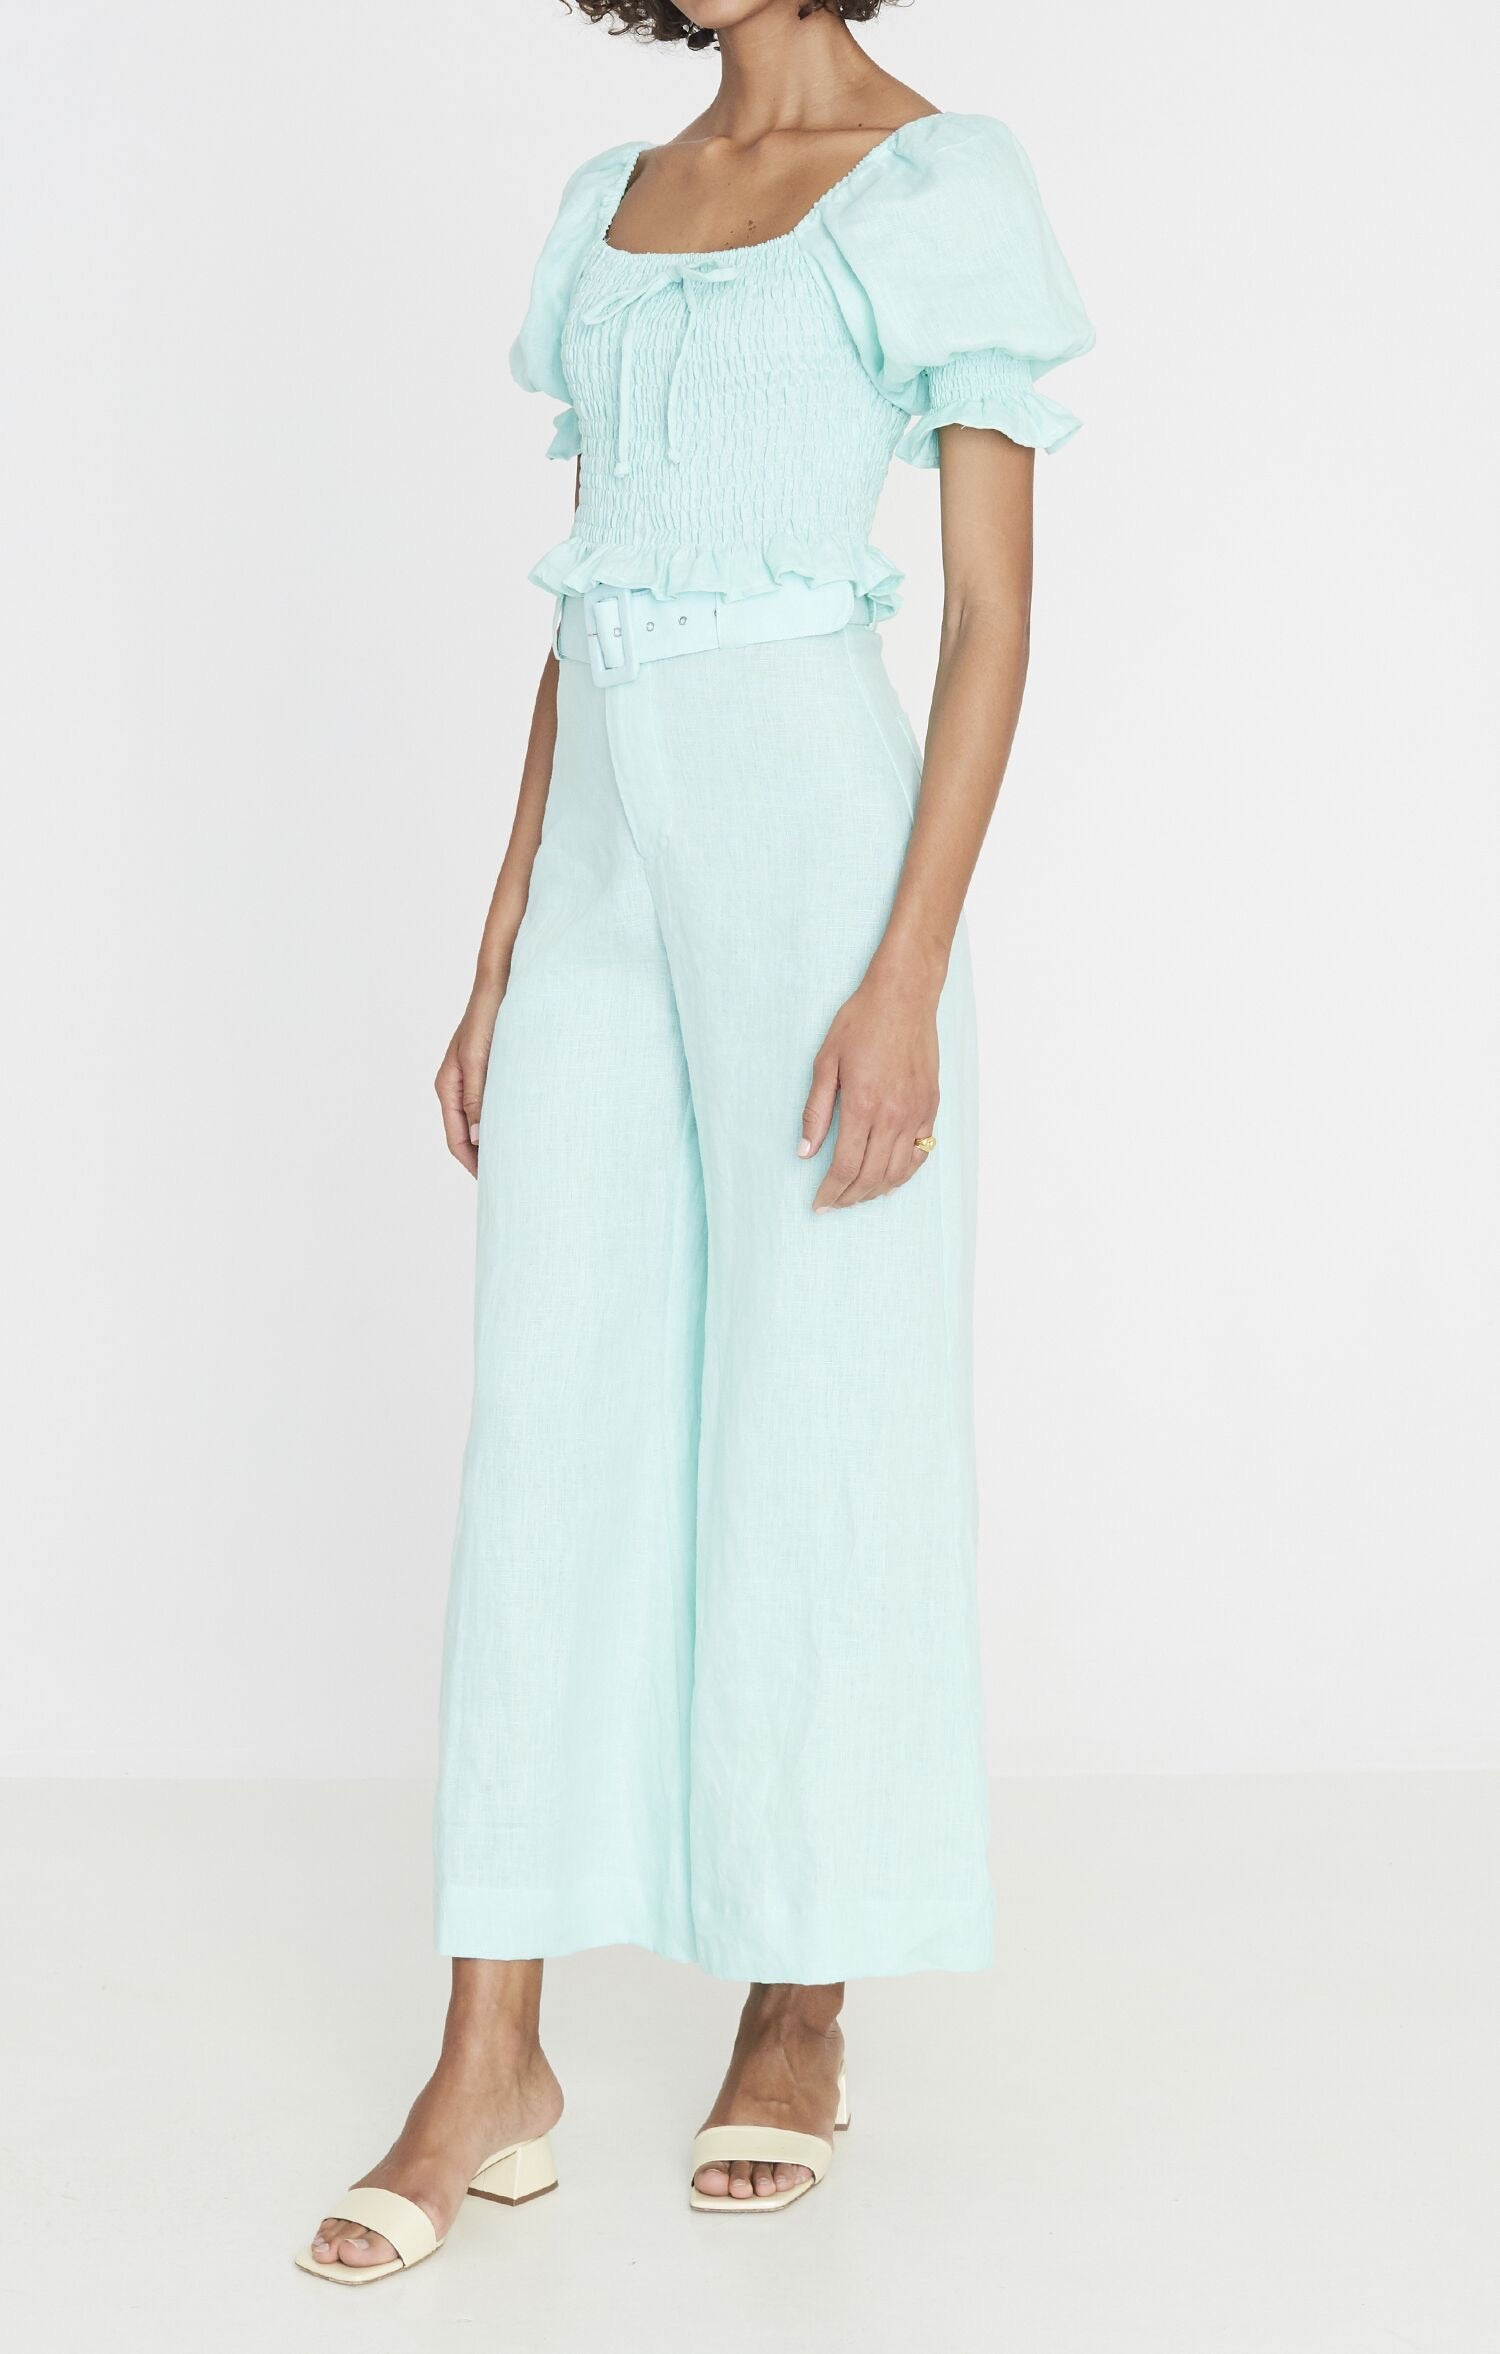 Rose Wide Leg Pants - Plain Spearmint